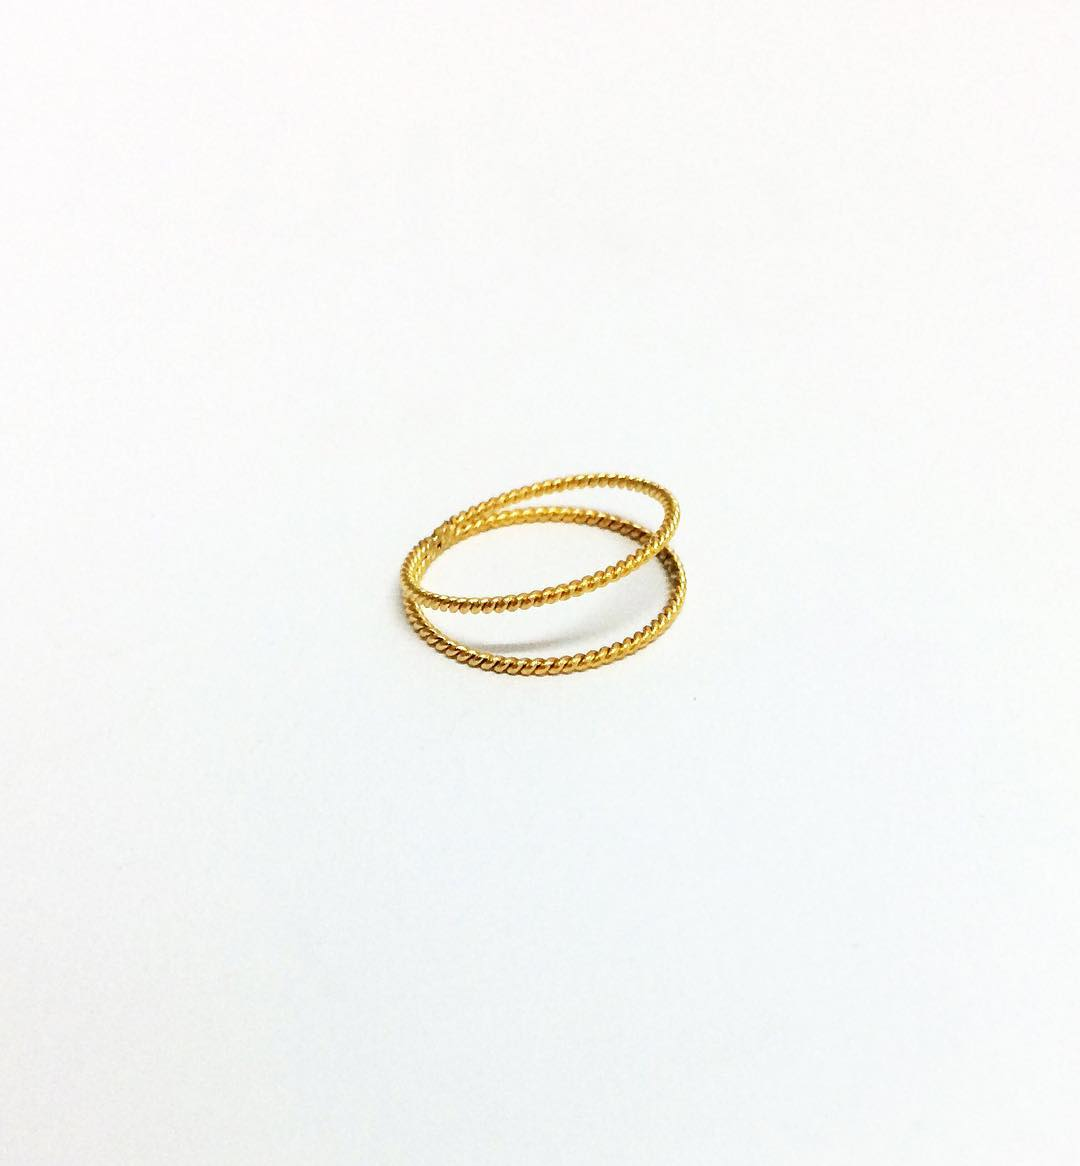 Made from old gold jewellery and transformed into a minimal and elegant ring